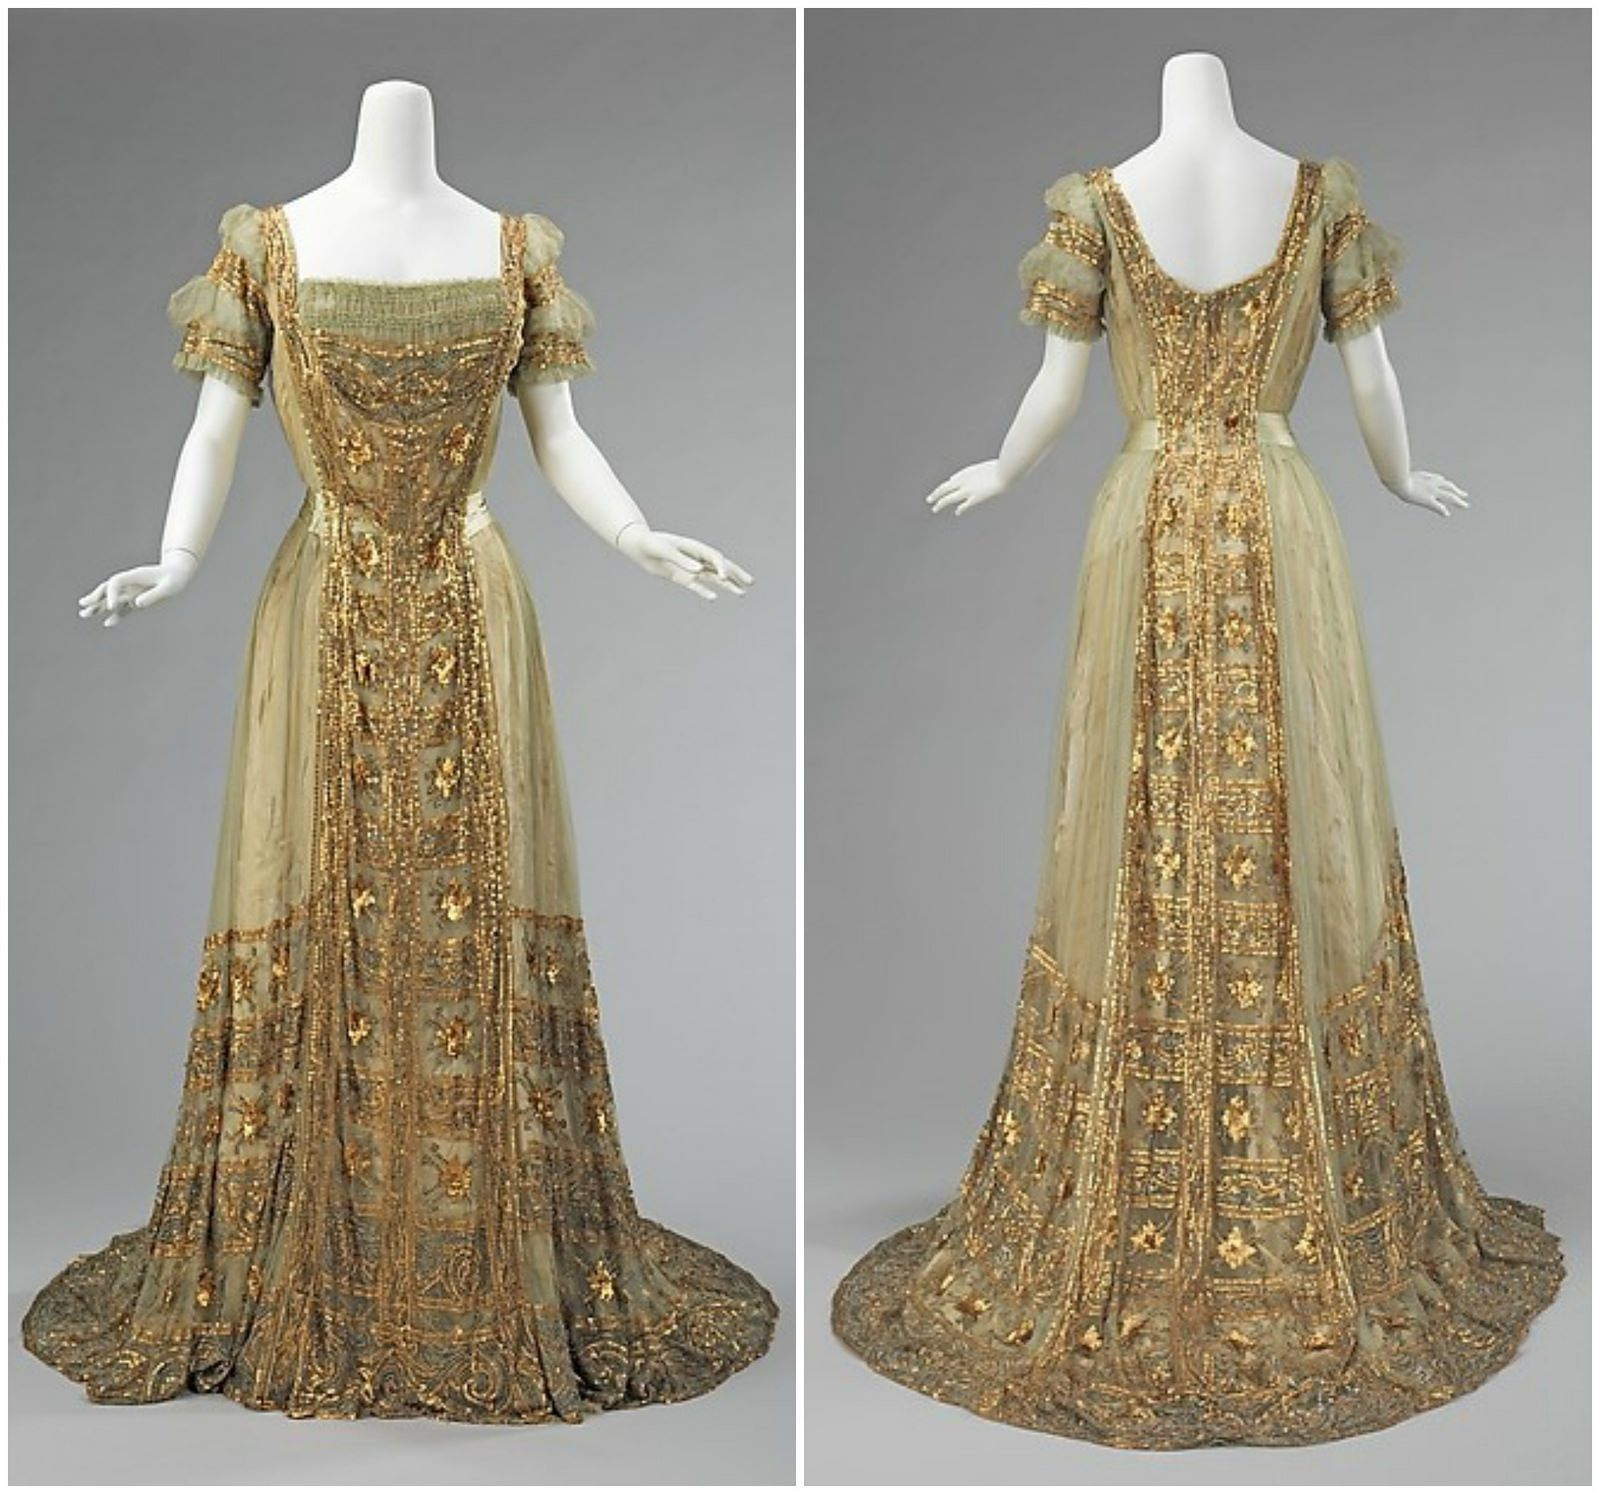 1910 Ball Gown. American. Silk. metmuseum | History ...